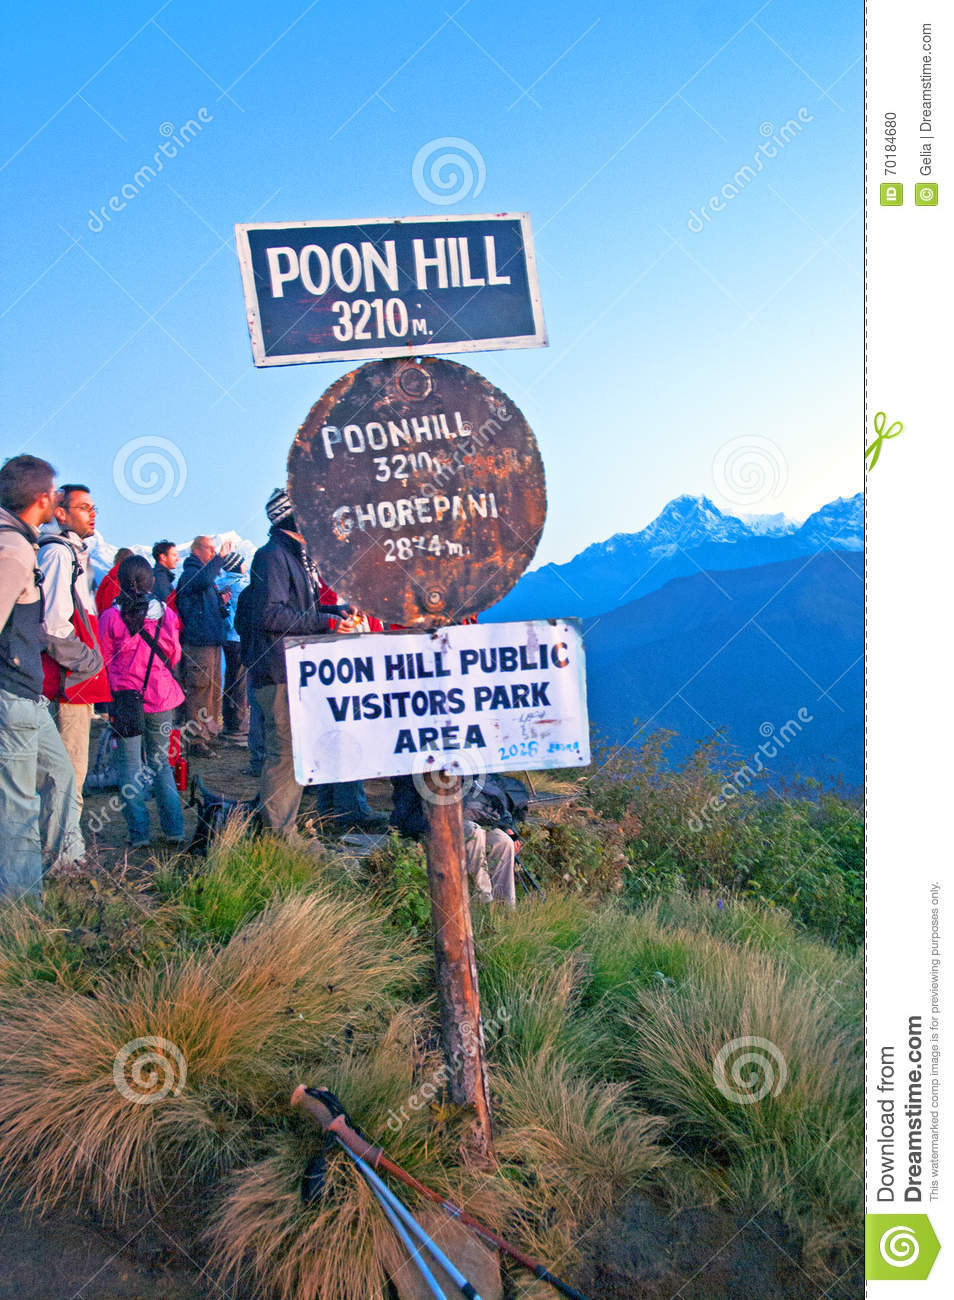 Poon hill altitude sign, Nepal